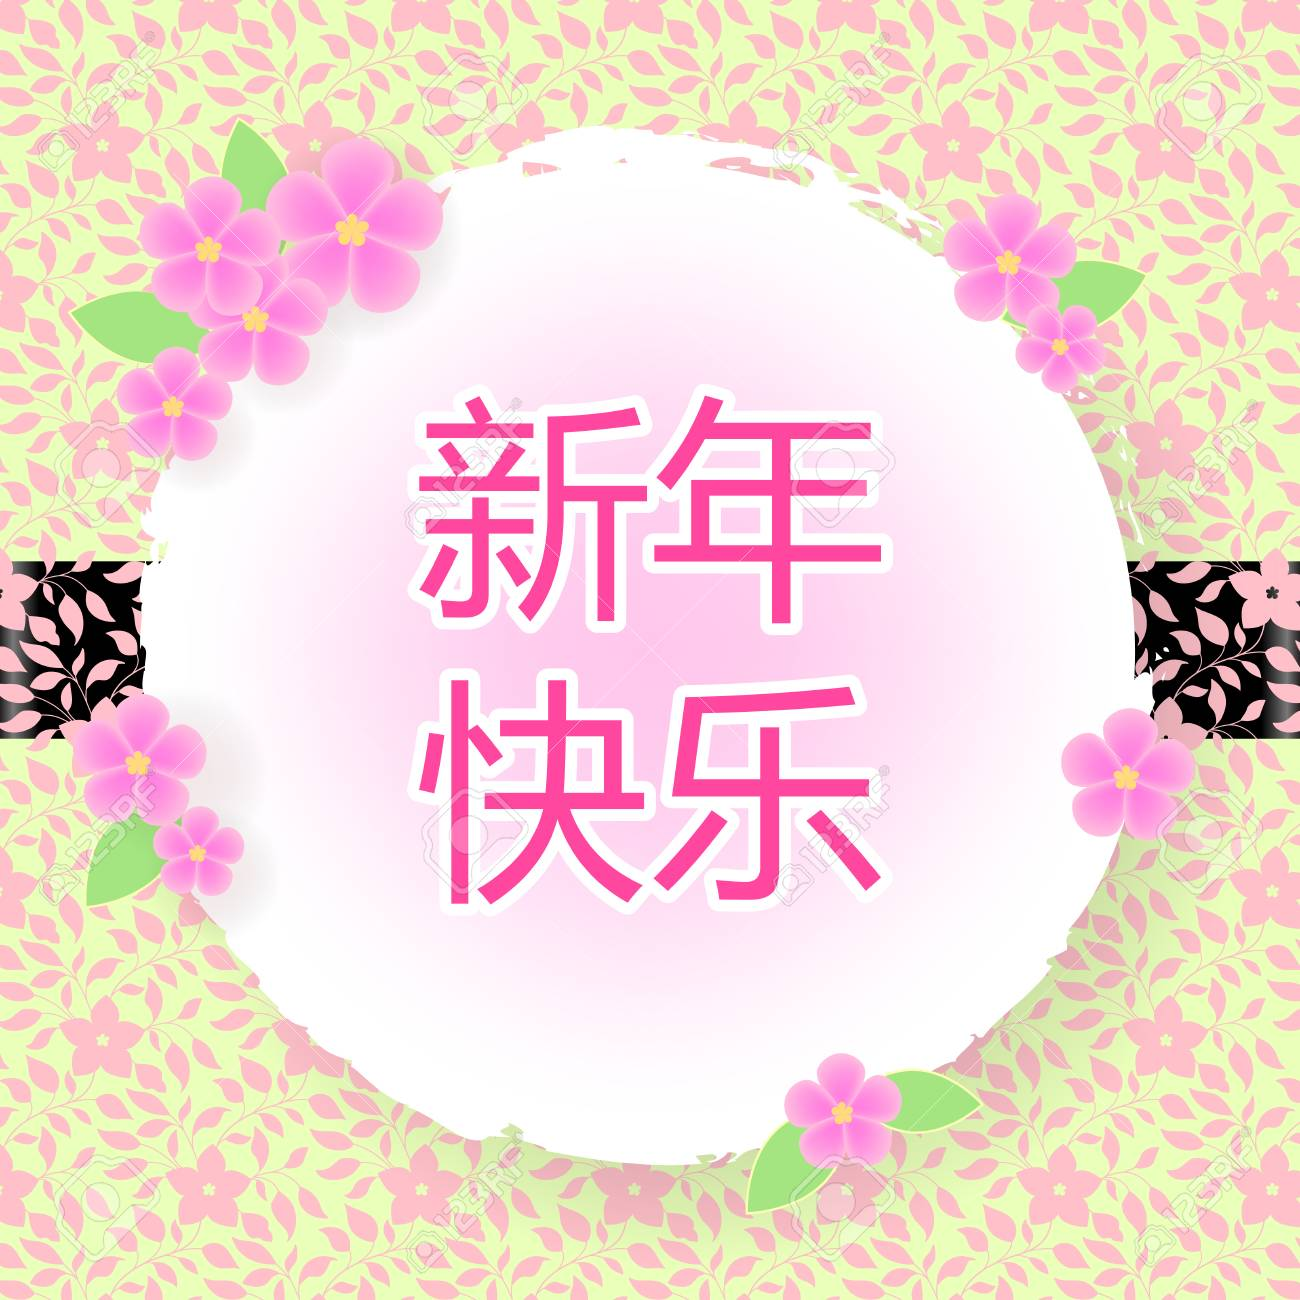 Chinese New Year Design The Words Translation Is Happy Chinese